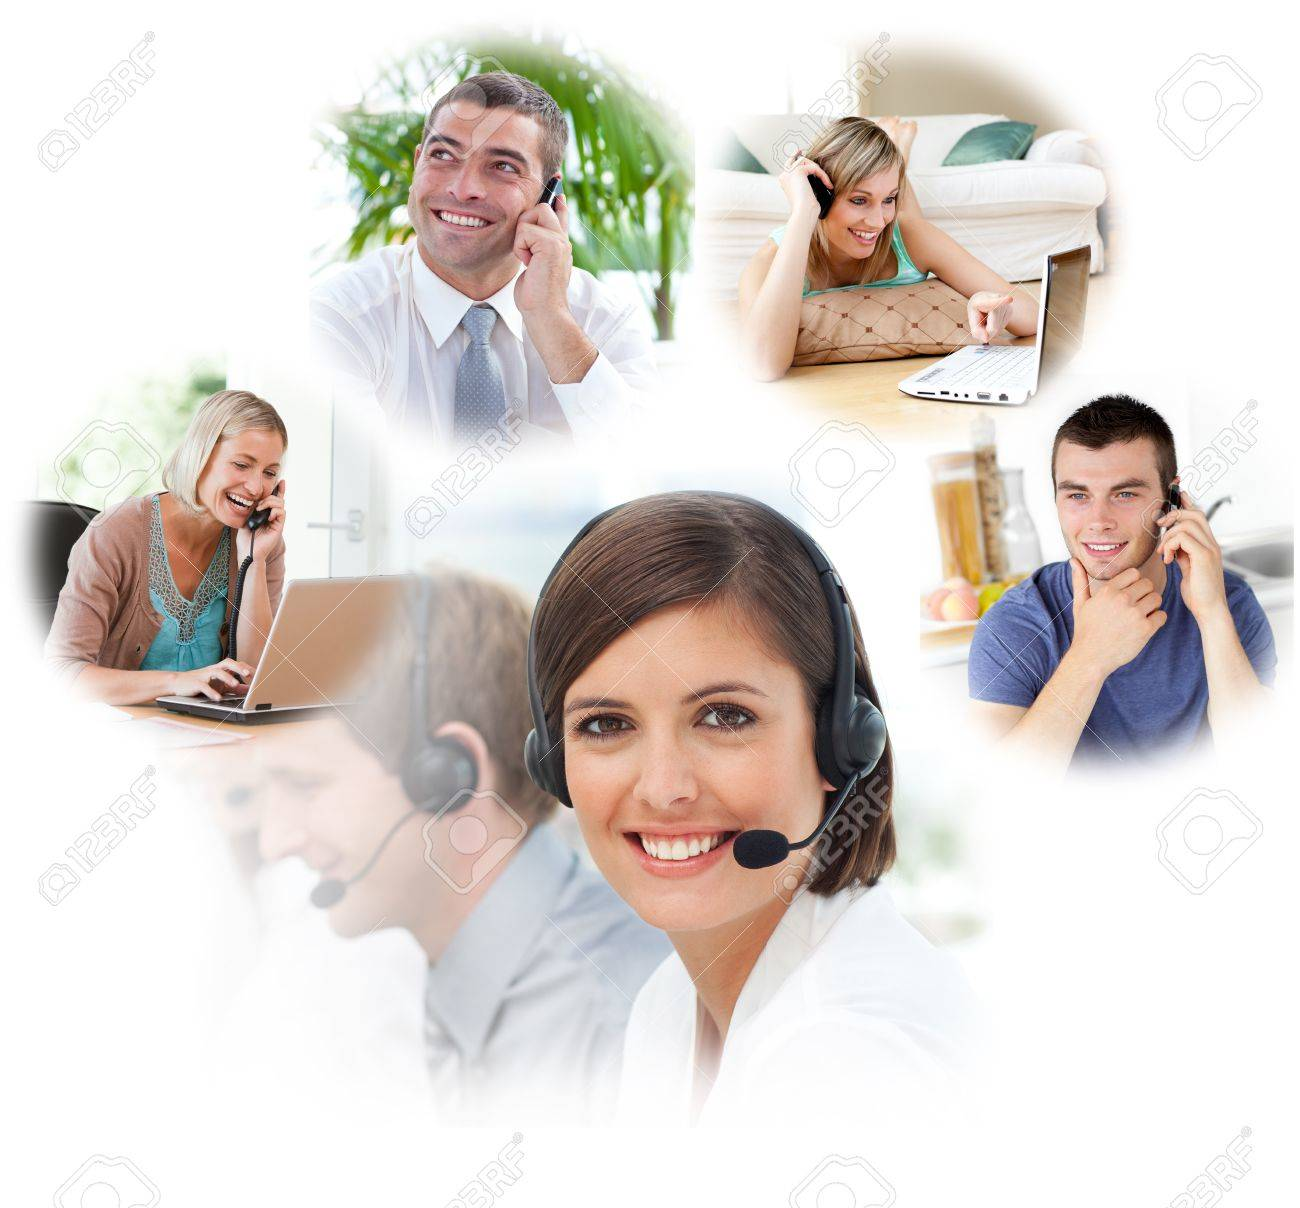 Customer service agents with headset on in a call center Stock Photo - 11189651